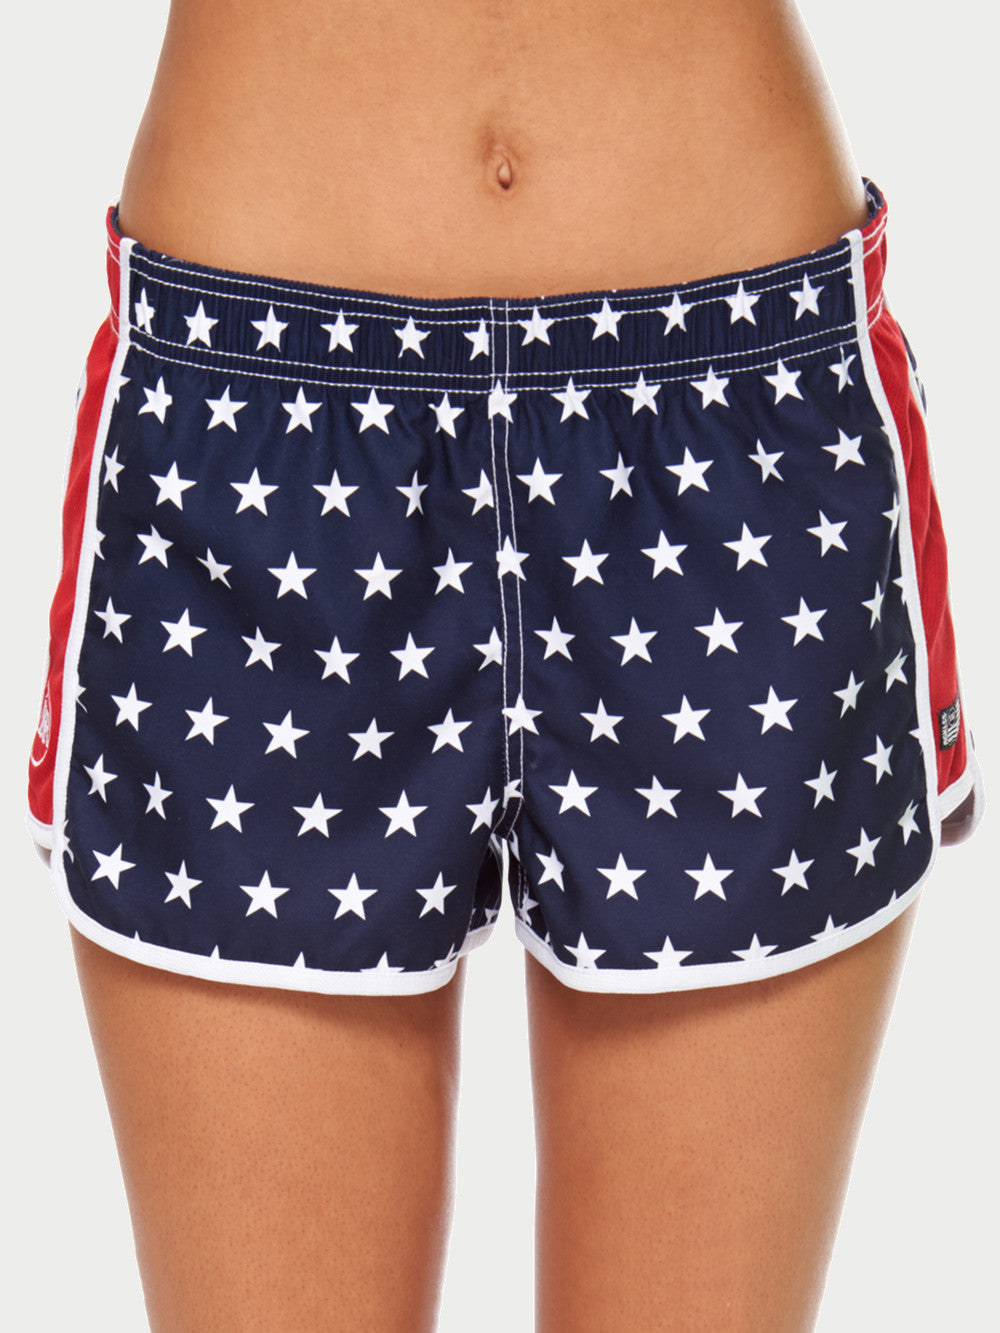 Superb Red White And Blue Shorts Reckless Girls Hairstyles For Women Draintrainus